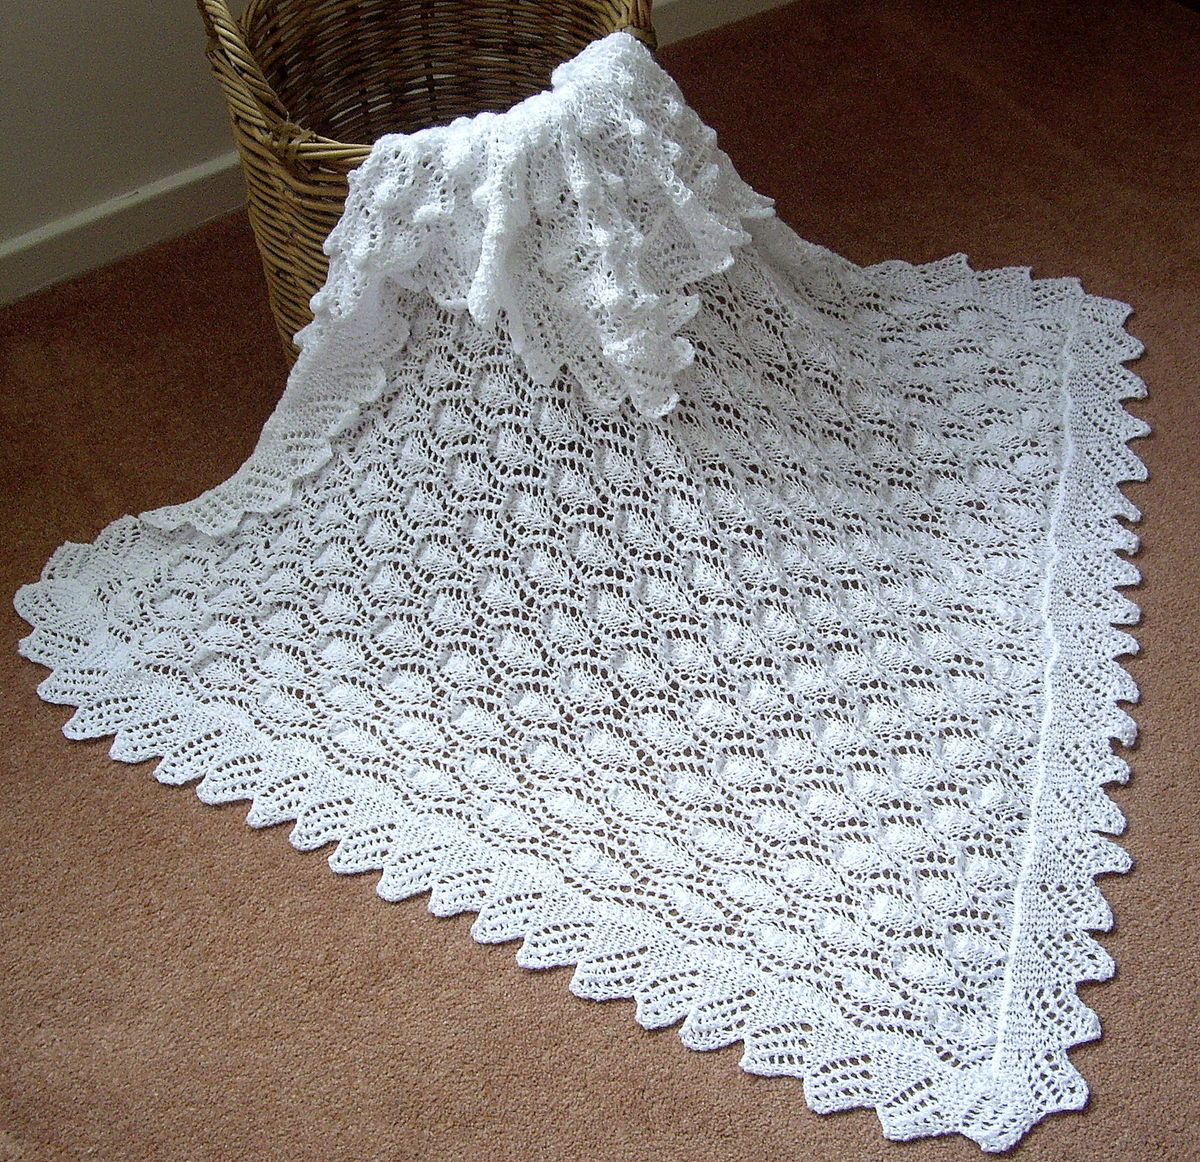 Free Knitting Pattern For A Baby Shawl : Beautiful Baby Shawl Blanket Hand Knitted in A Lace ...